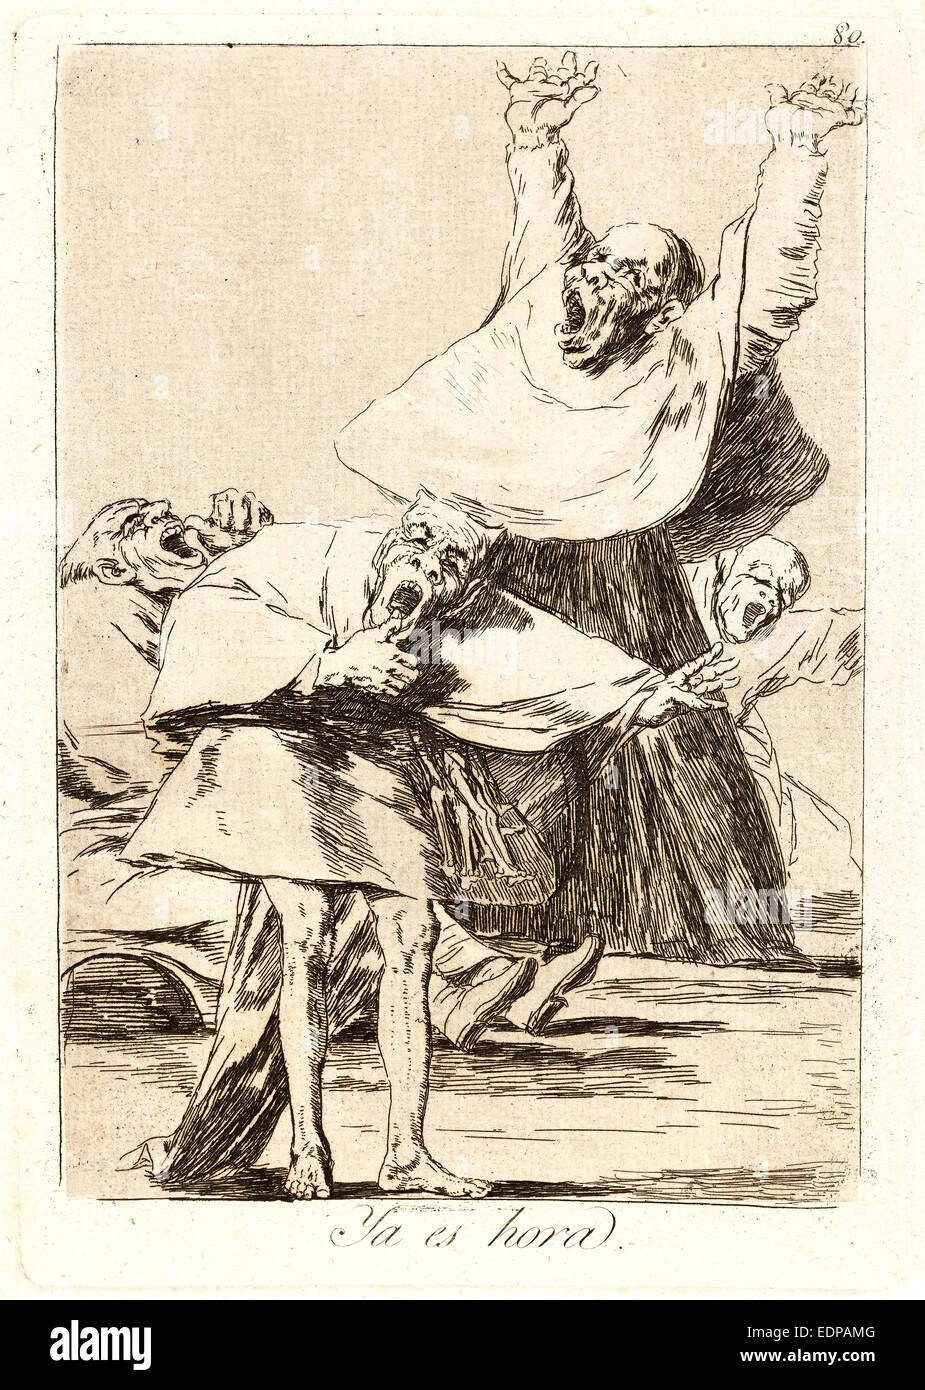 Francisco de Goya (Spanish, 1746-1828). Ya es hora. (It is time.), 1796-1797. From Los Caprichos, no. 80. Etching - Stock Image